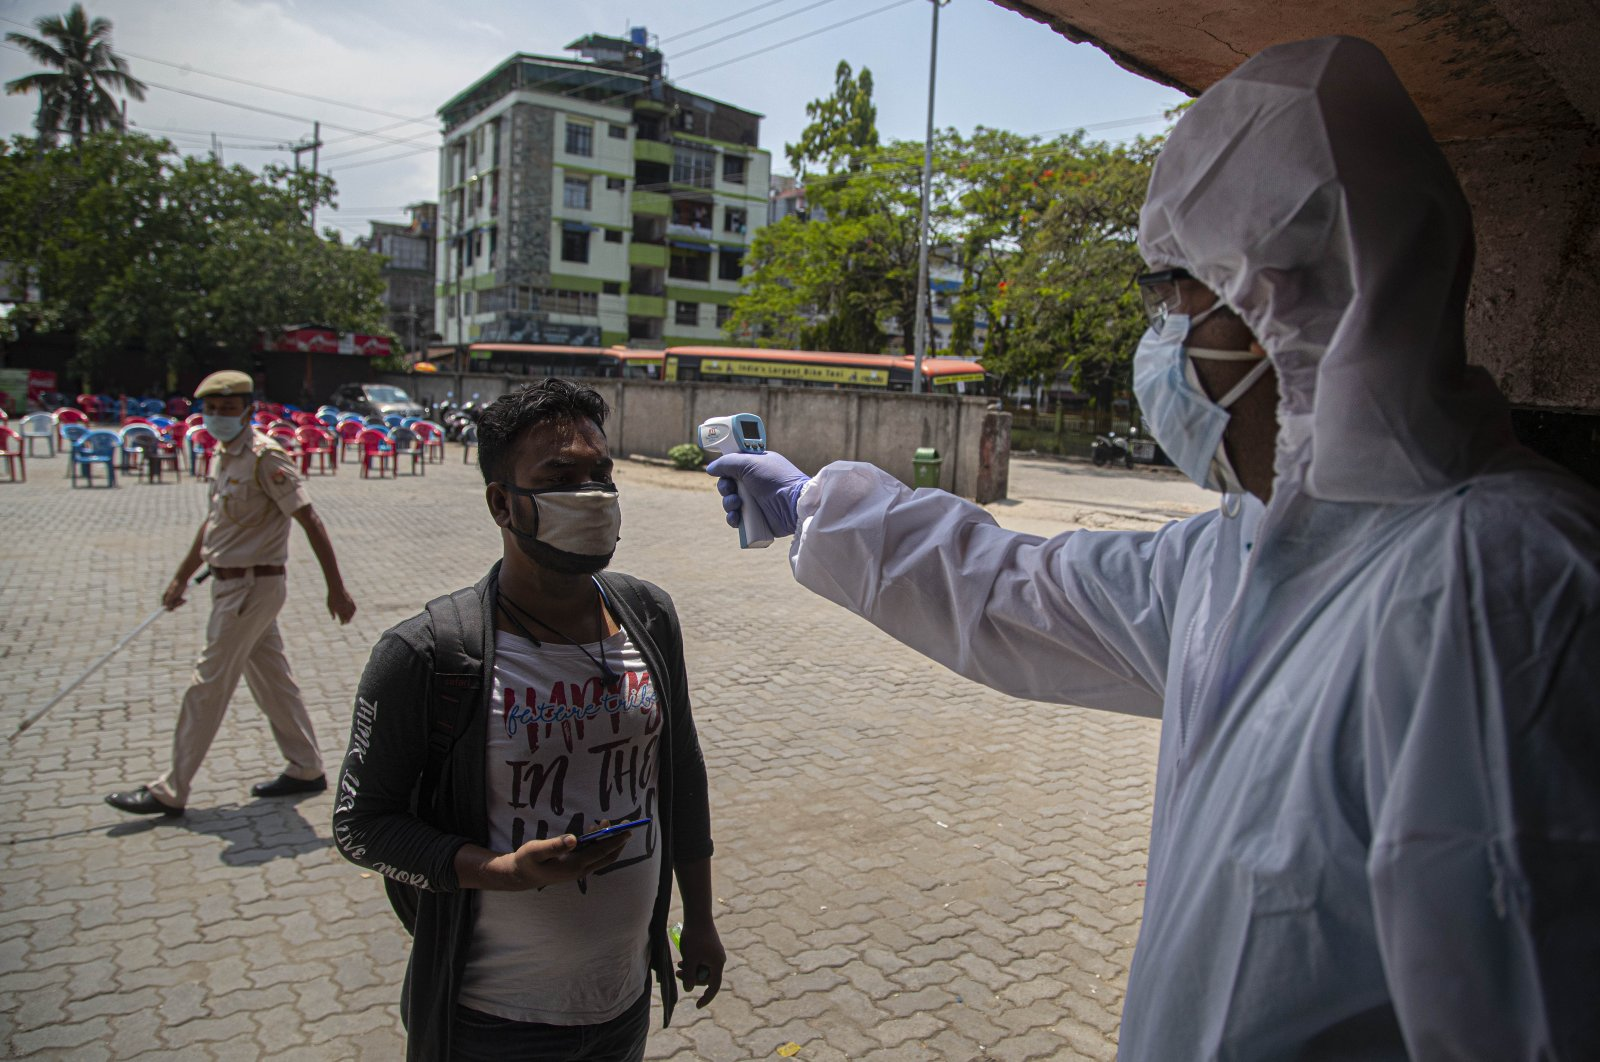 A health worker checks temperature of a passenger as people who were stranded in the city due to the month-long lockdown to curb the spread of new coronavirus, arrive to board special buses to their villages in Gauhati, India, April 27, 2020. (AP Photo)